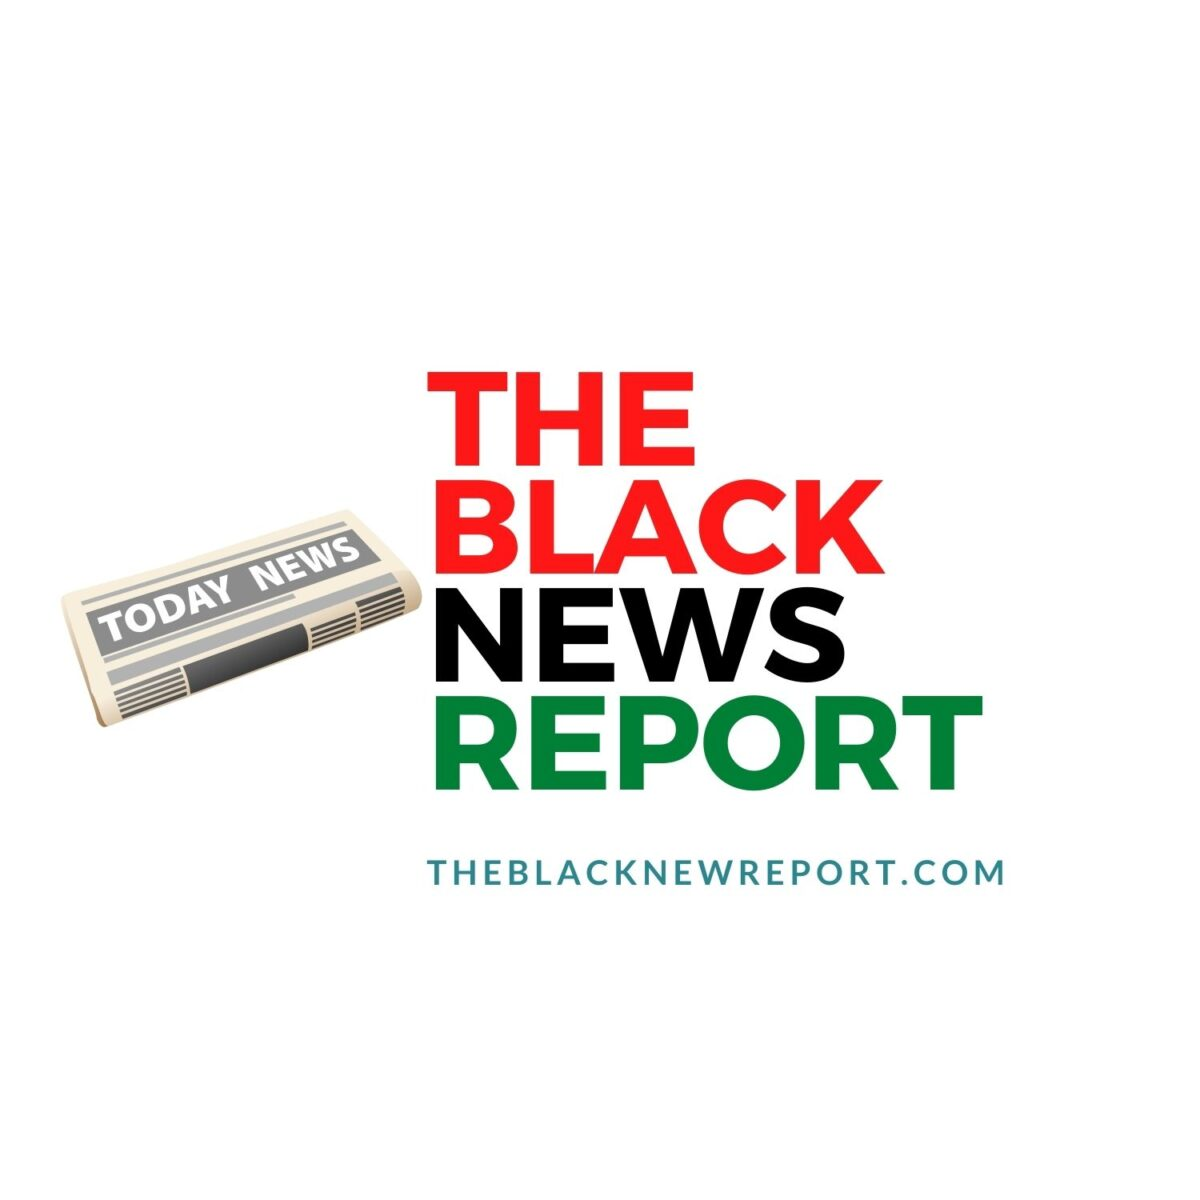 The Black News Report